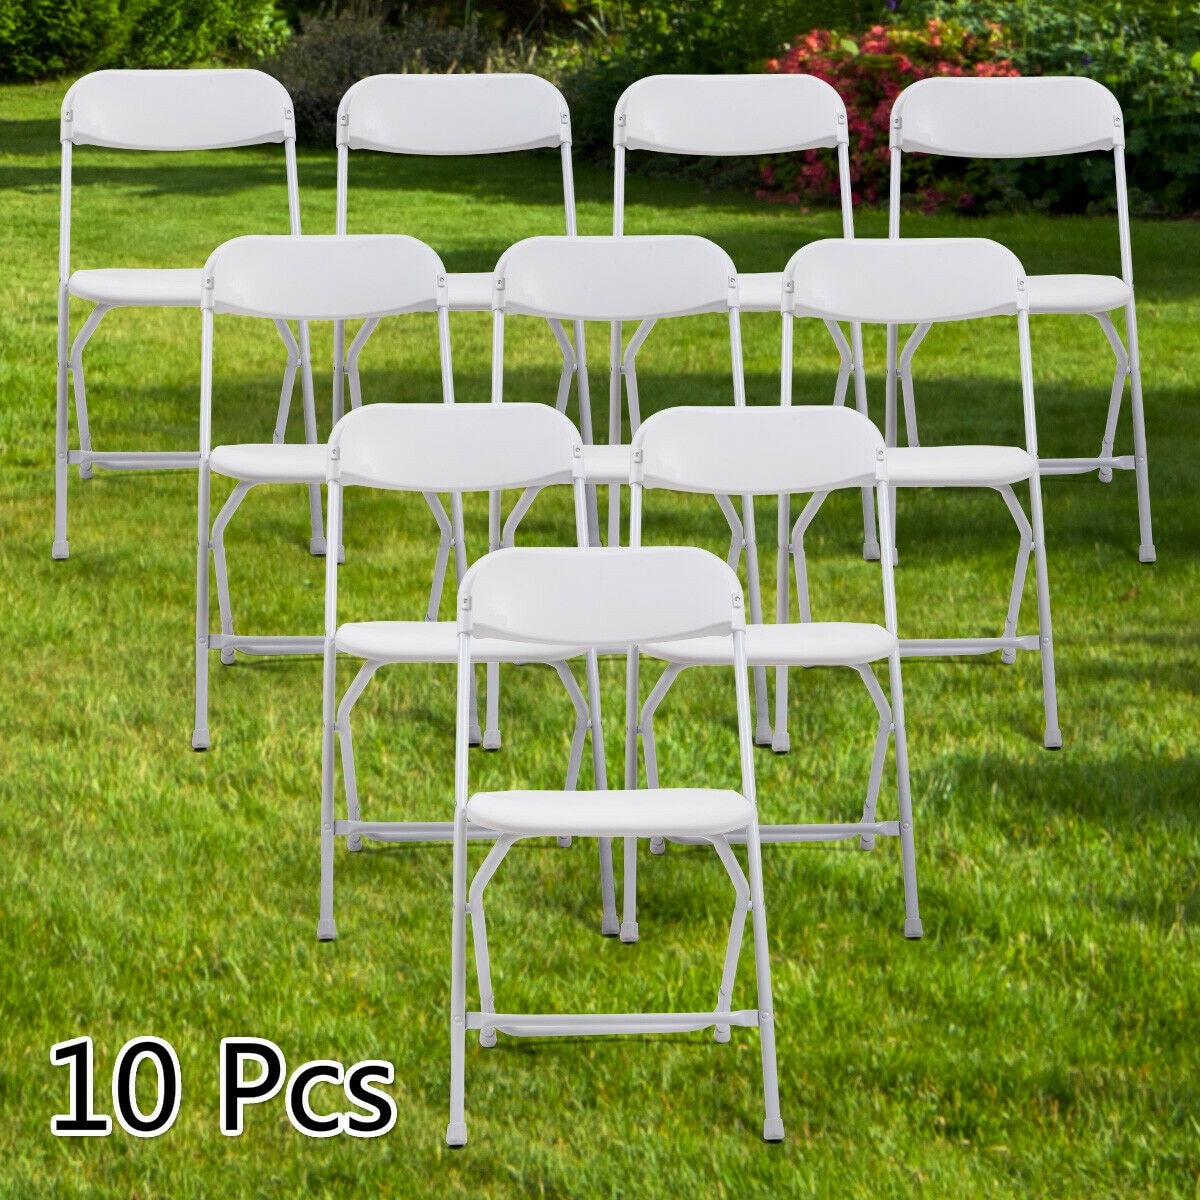 10 Pcs Plastic Folding Chairs Wedding Party Chairs Stackable White Overstock 31647520